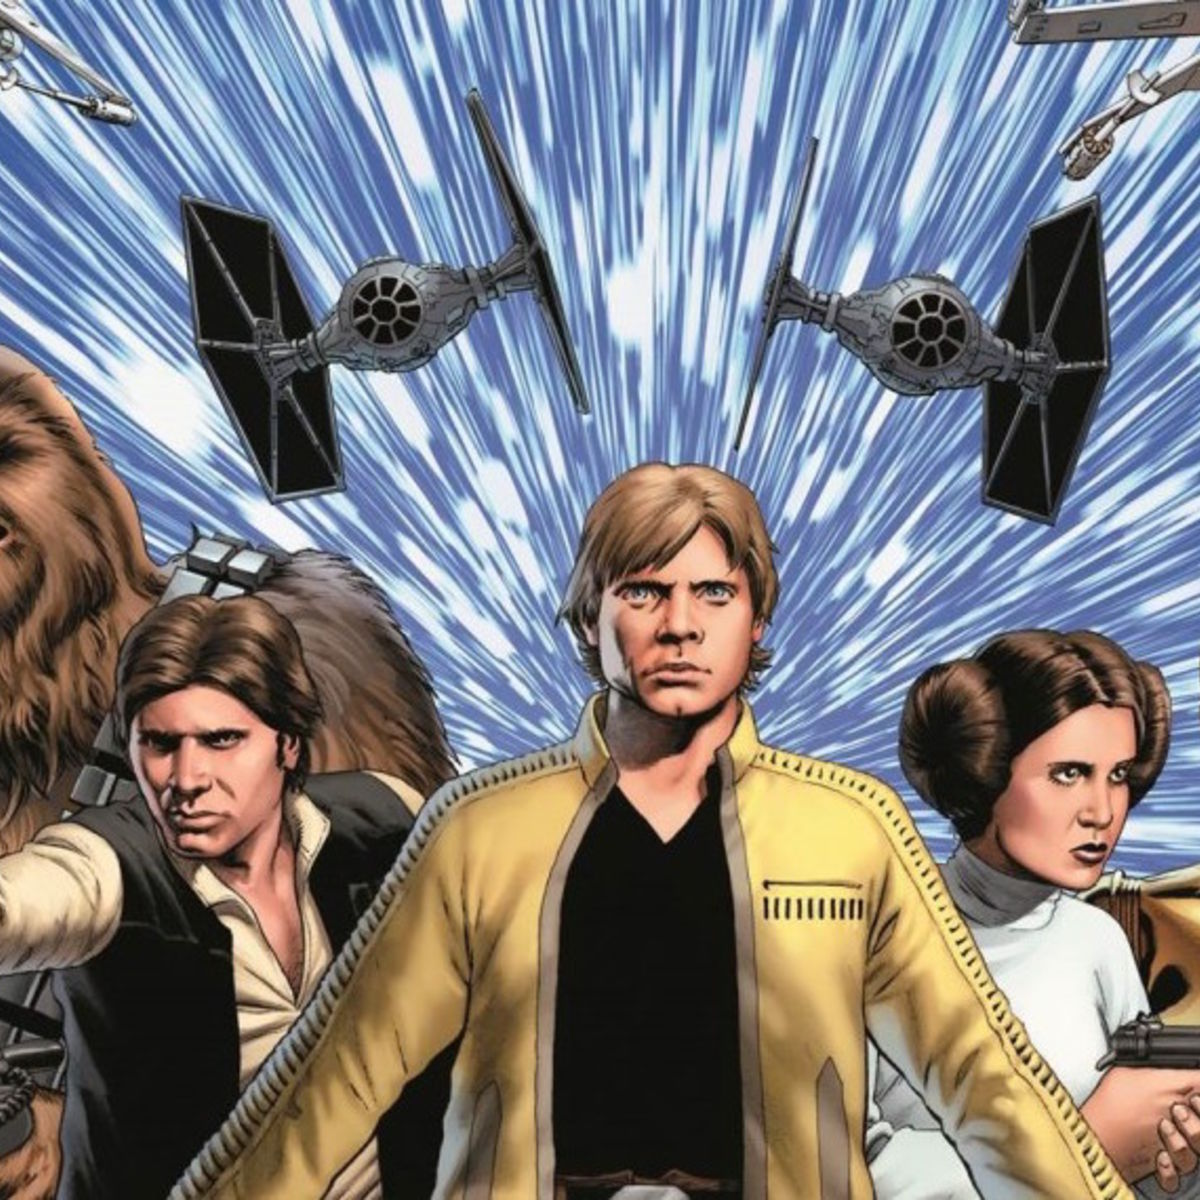 Star_Wars_1_Cassaday_cov-1088x816-326453680172.jpg